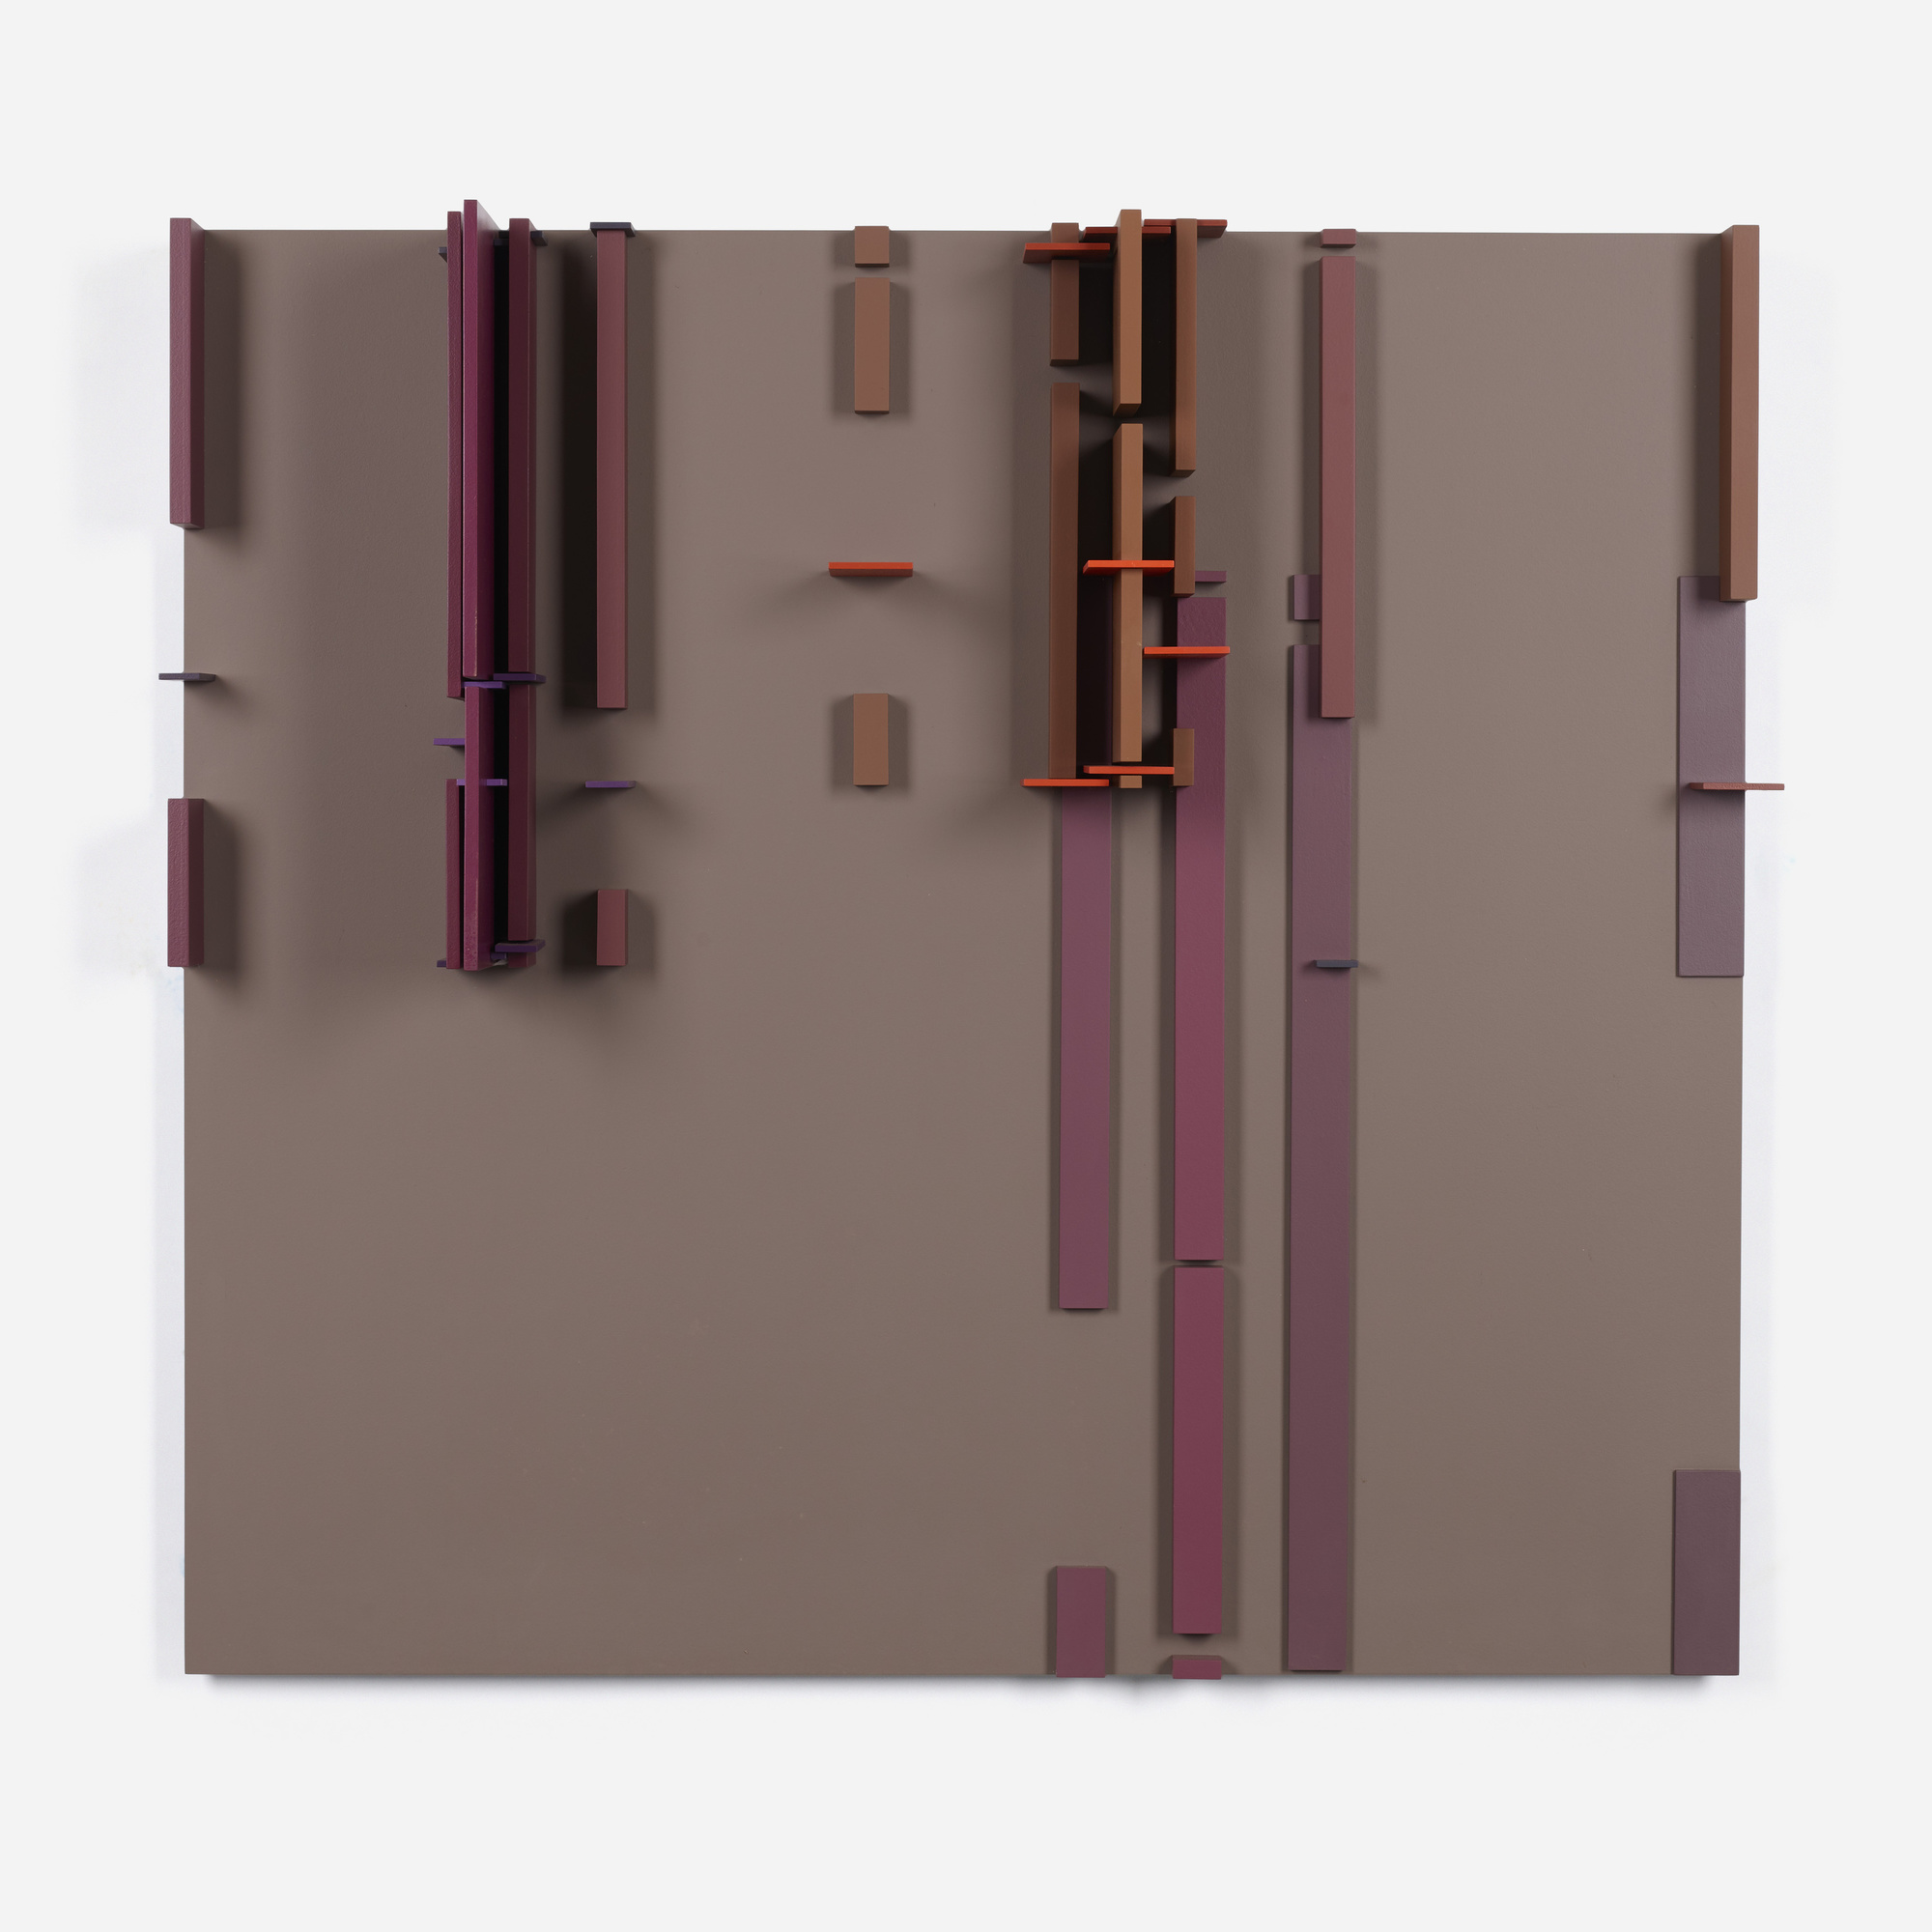 102: David Barr / Structurist Relief No. 104 (1 of 4)